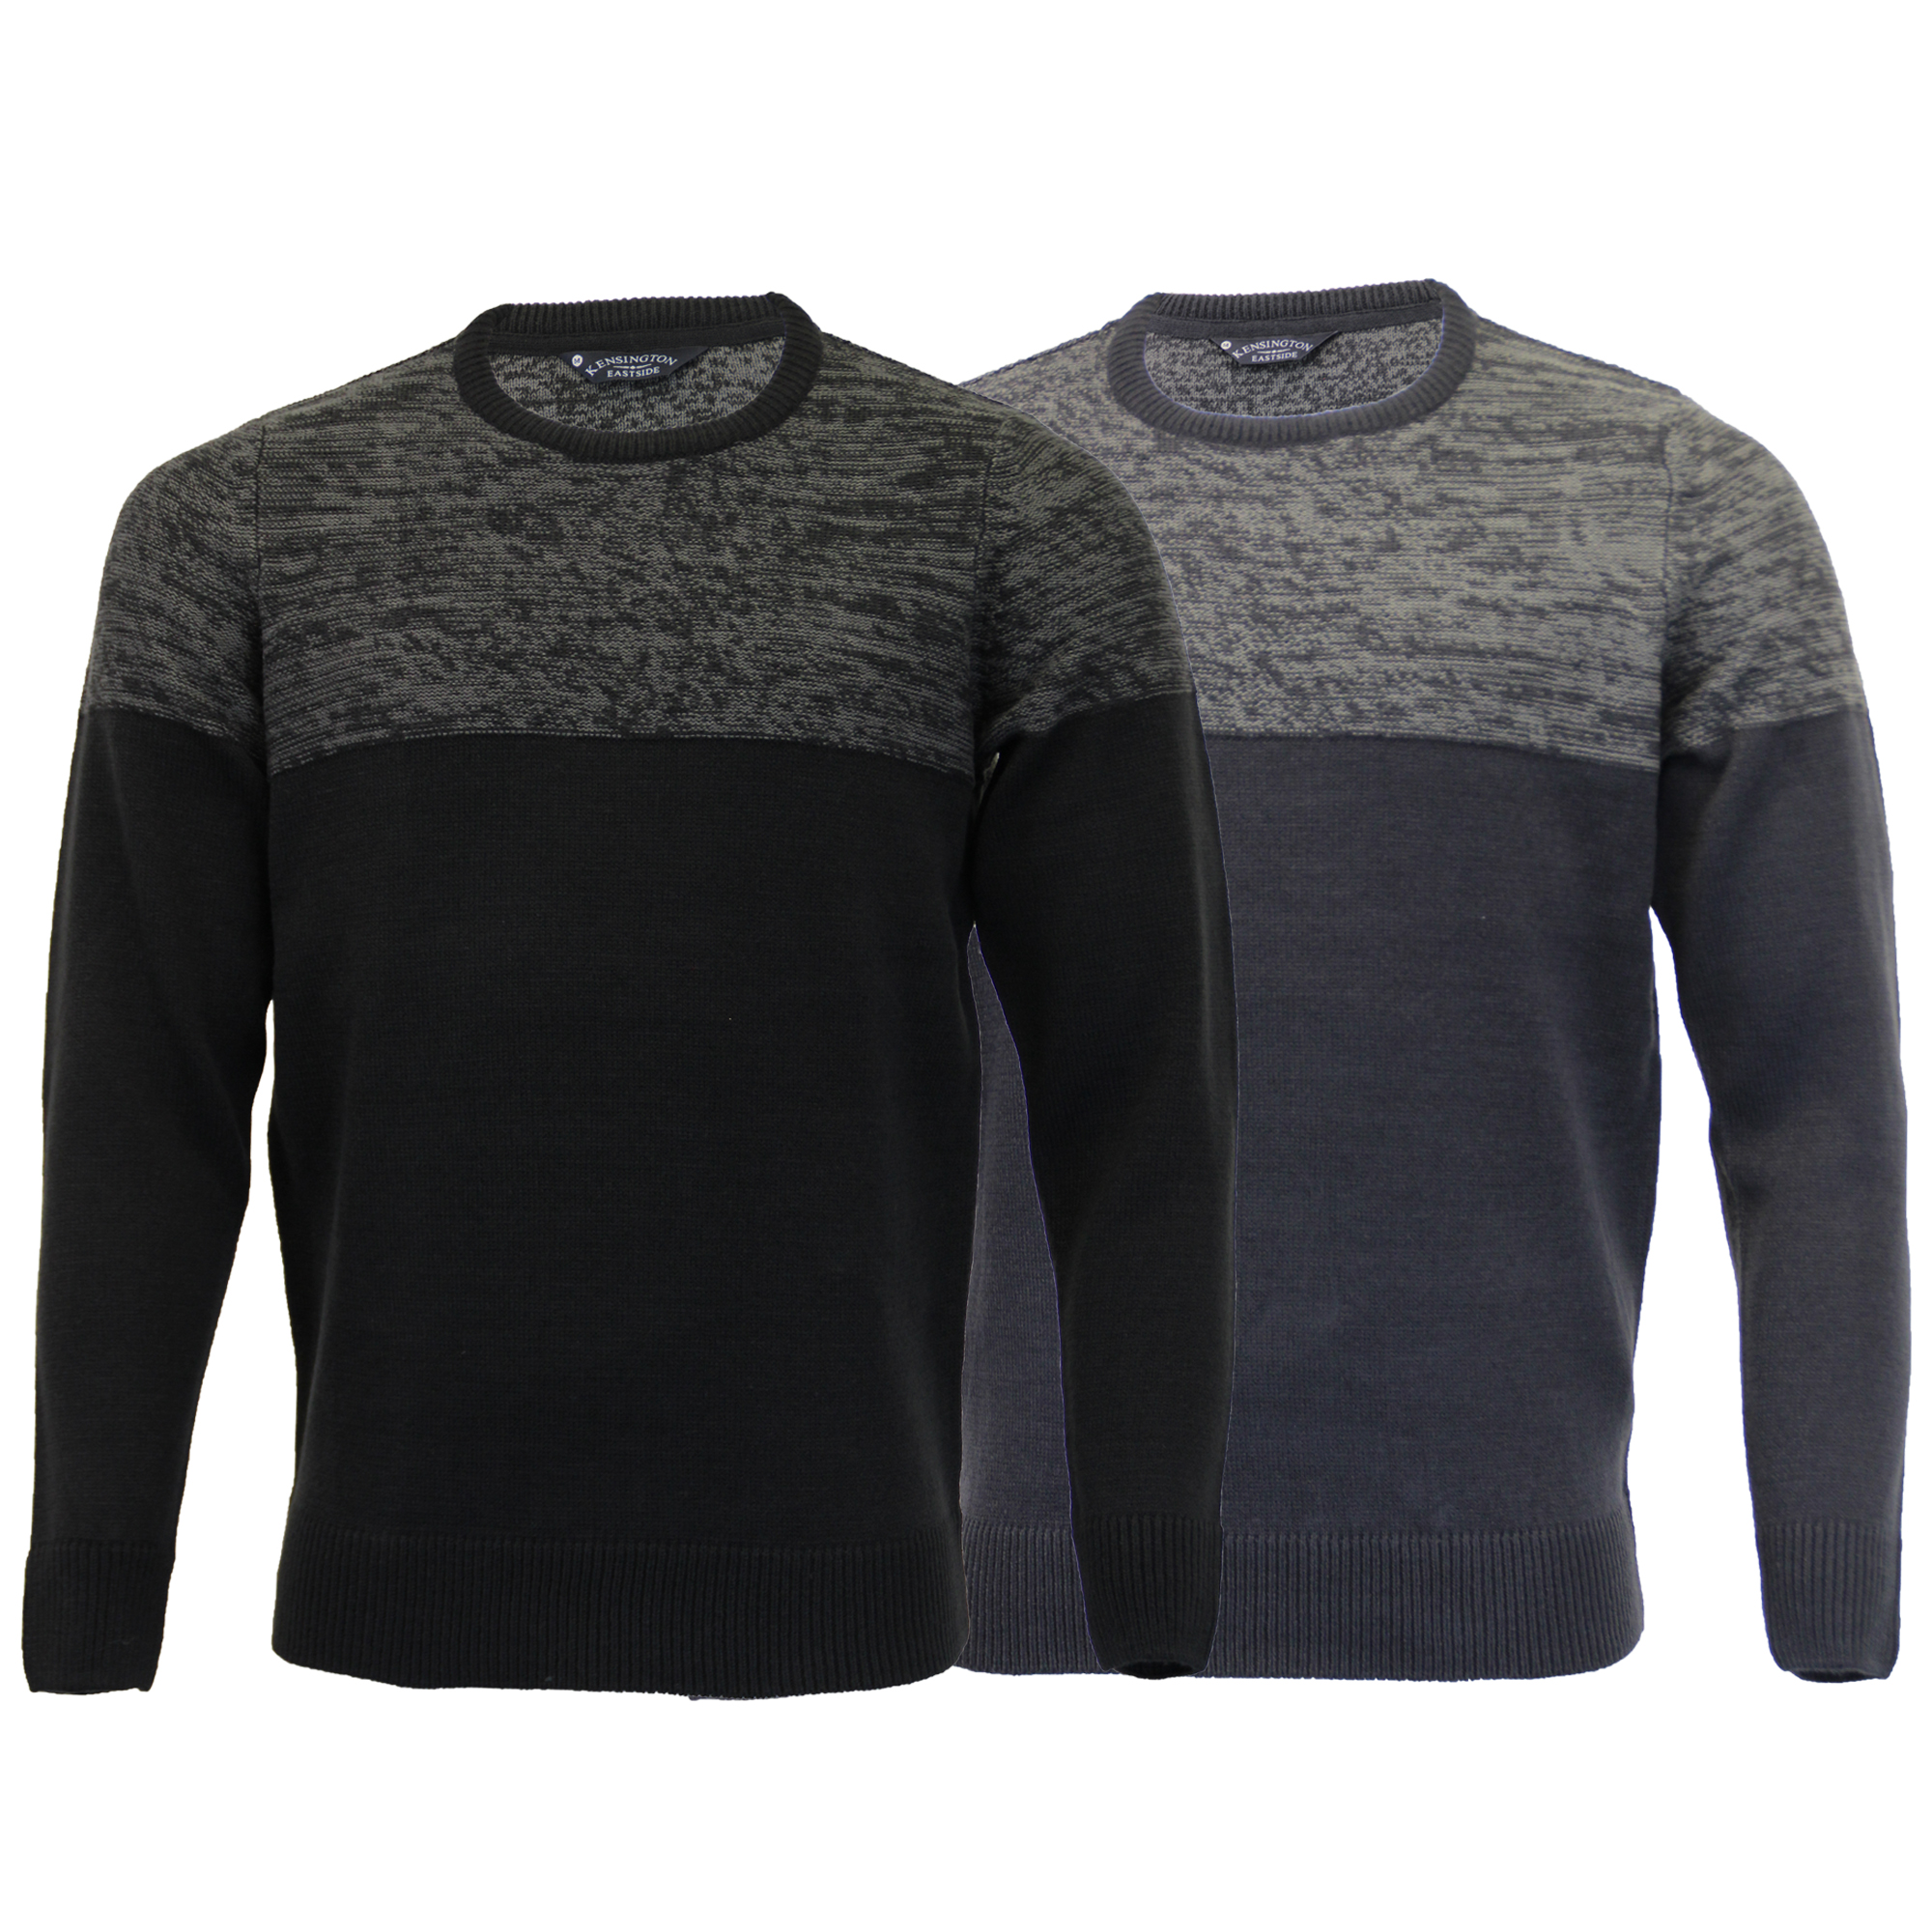 Details about Mens Knitted Jumper Kensington Eastside Sweater Pullover Top Acrylic Winter New